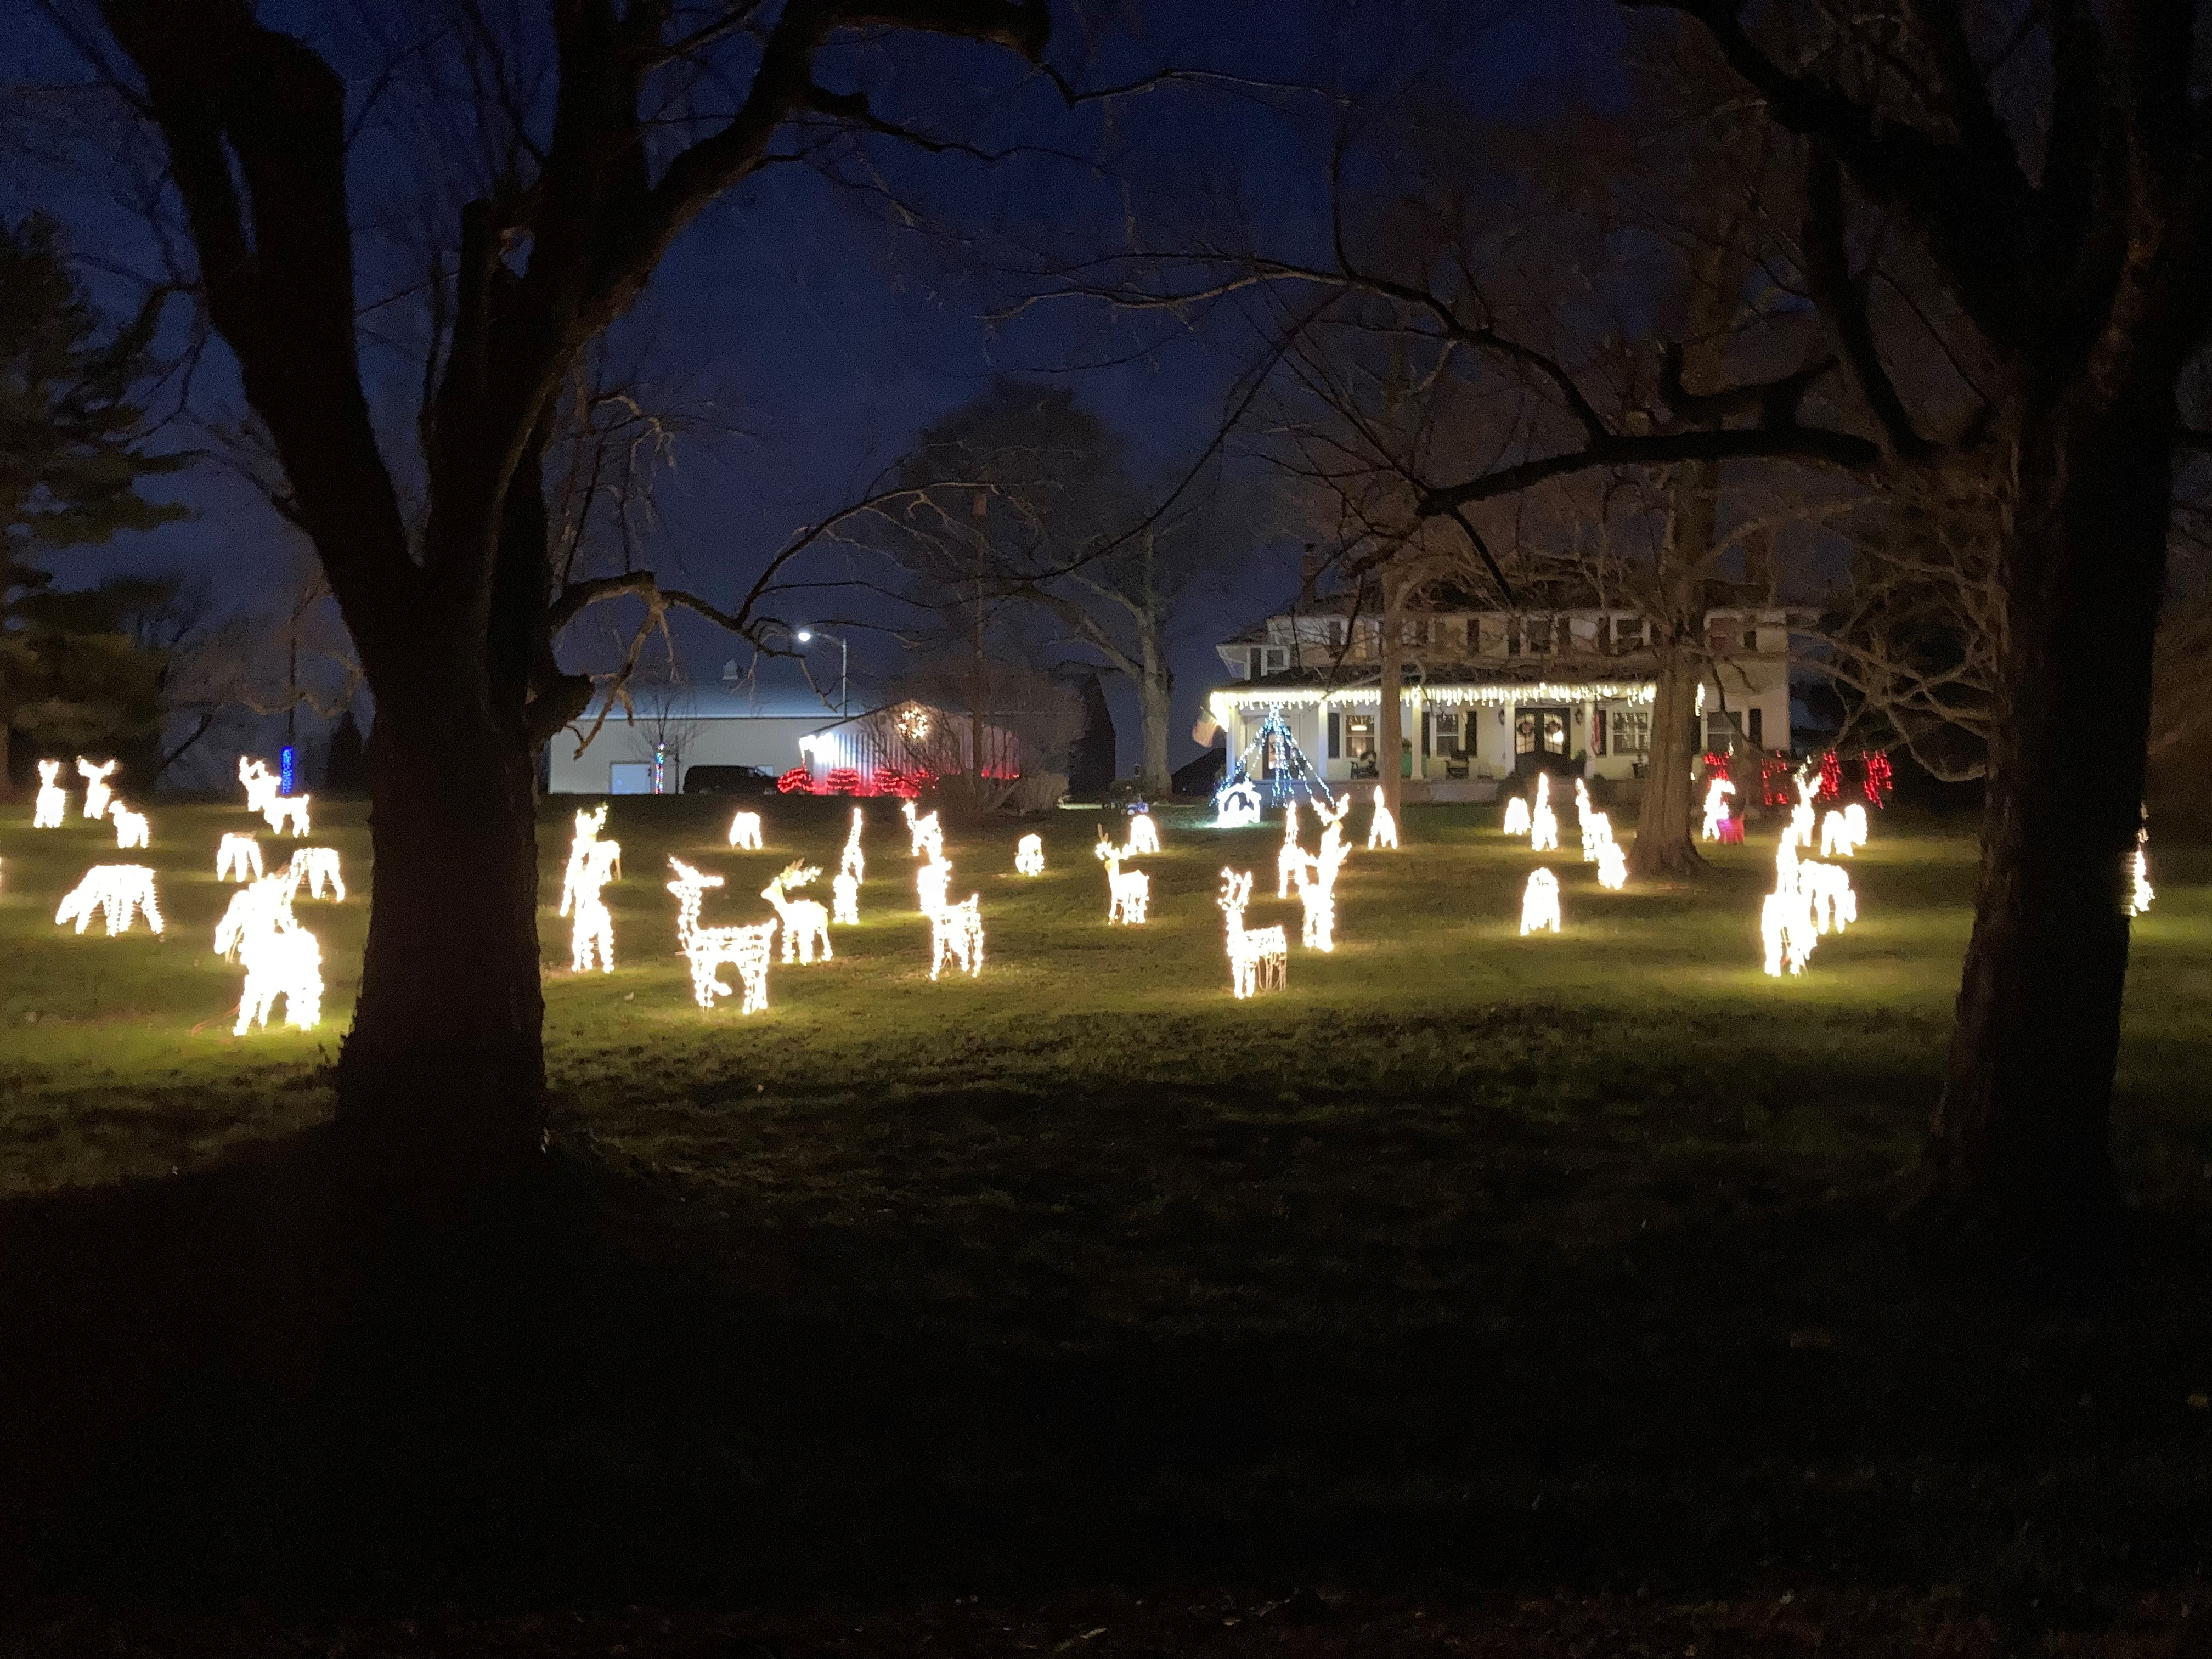 City Of Warren Christmas Tree Lighting 2021 Warren County Reindeer House Tradition Carried On By New Owners